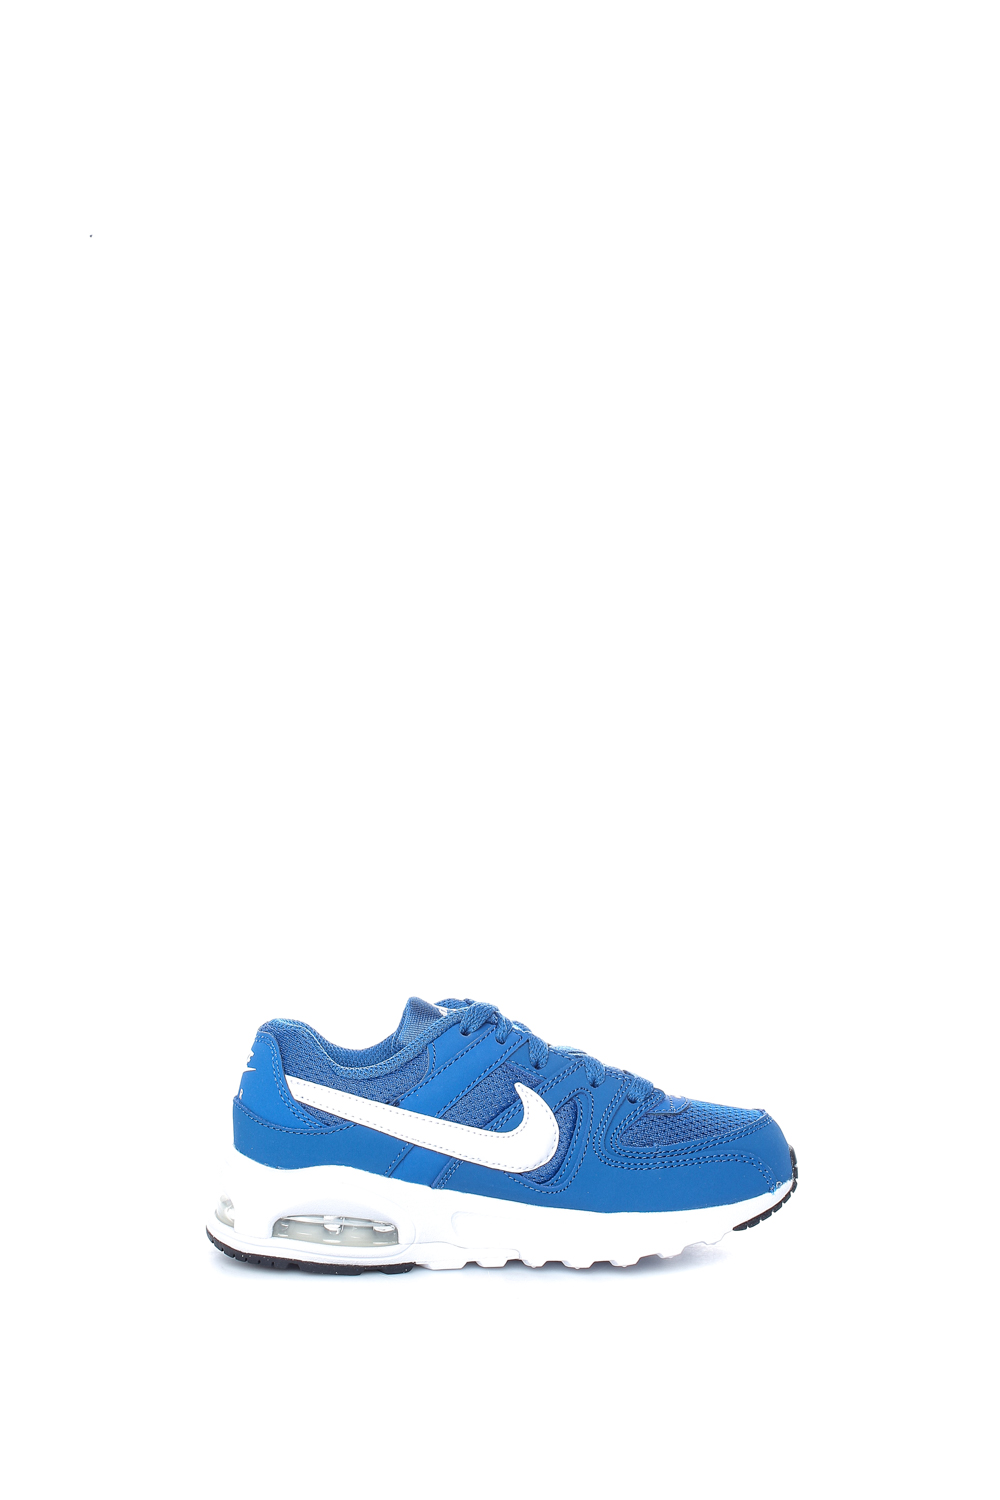 check out 1cf39 e5c6a NIKE – Παιδικά αθλητικά παπούτσια Nike AIR MAX COMMAND FLEX (PS) μπλε